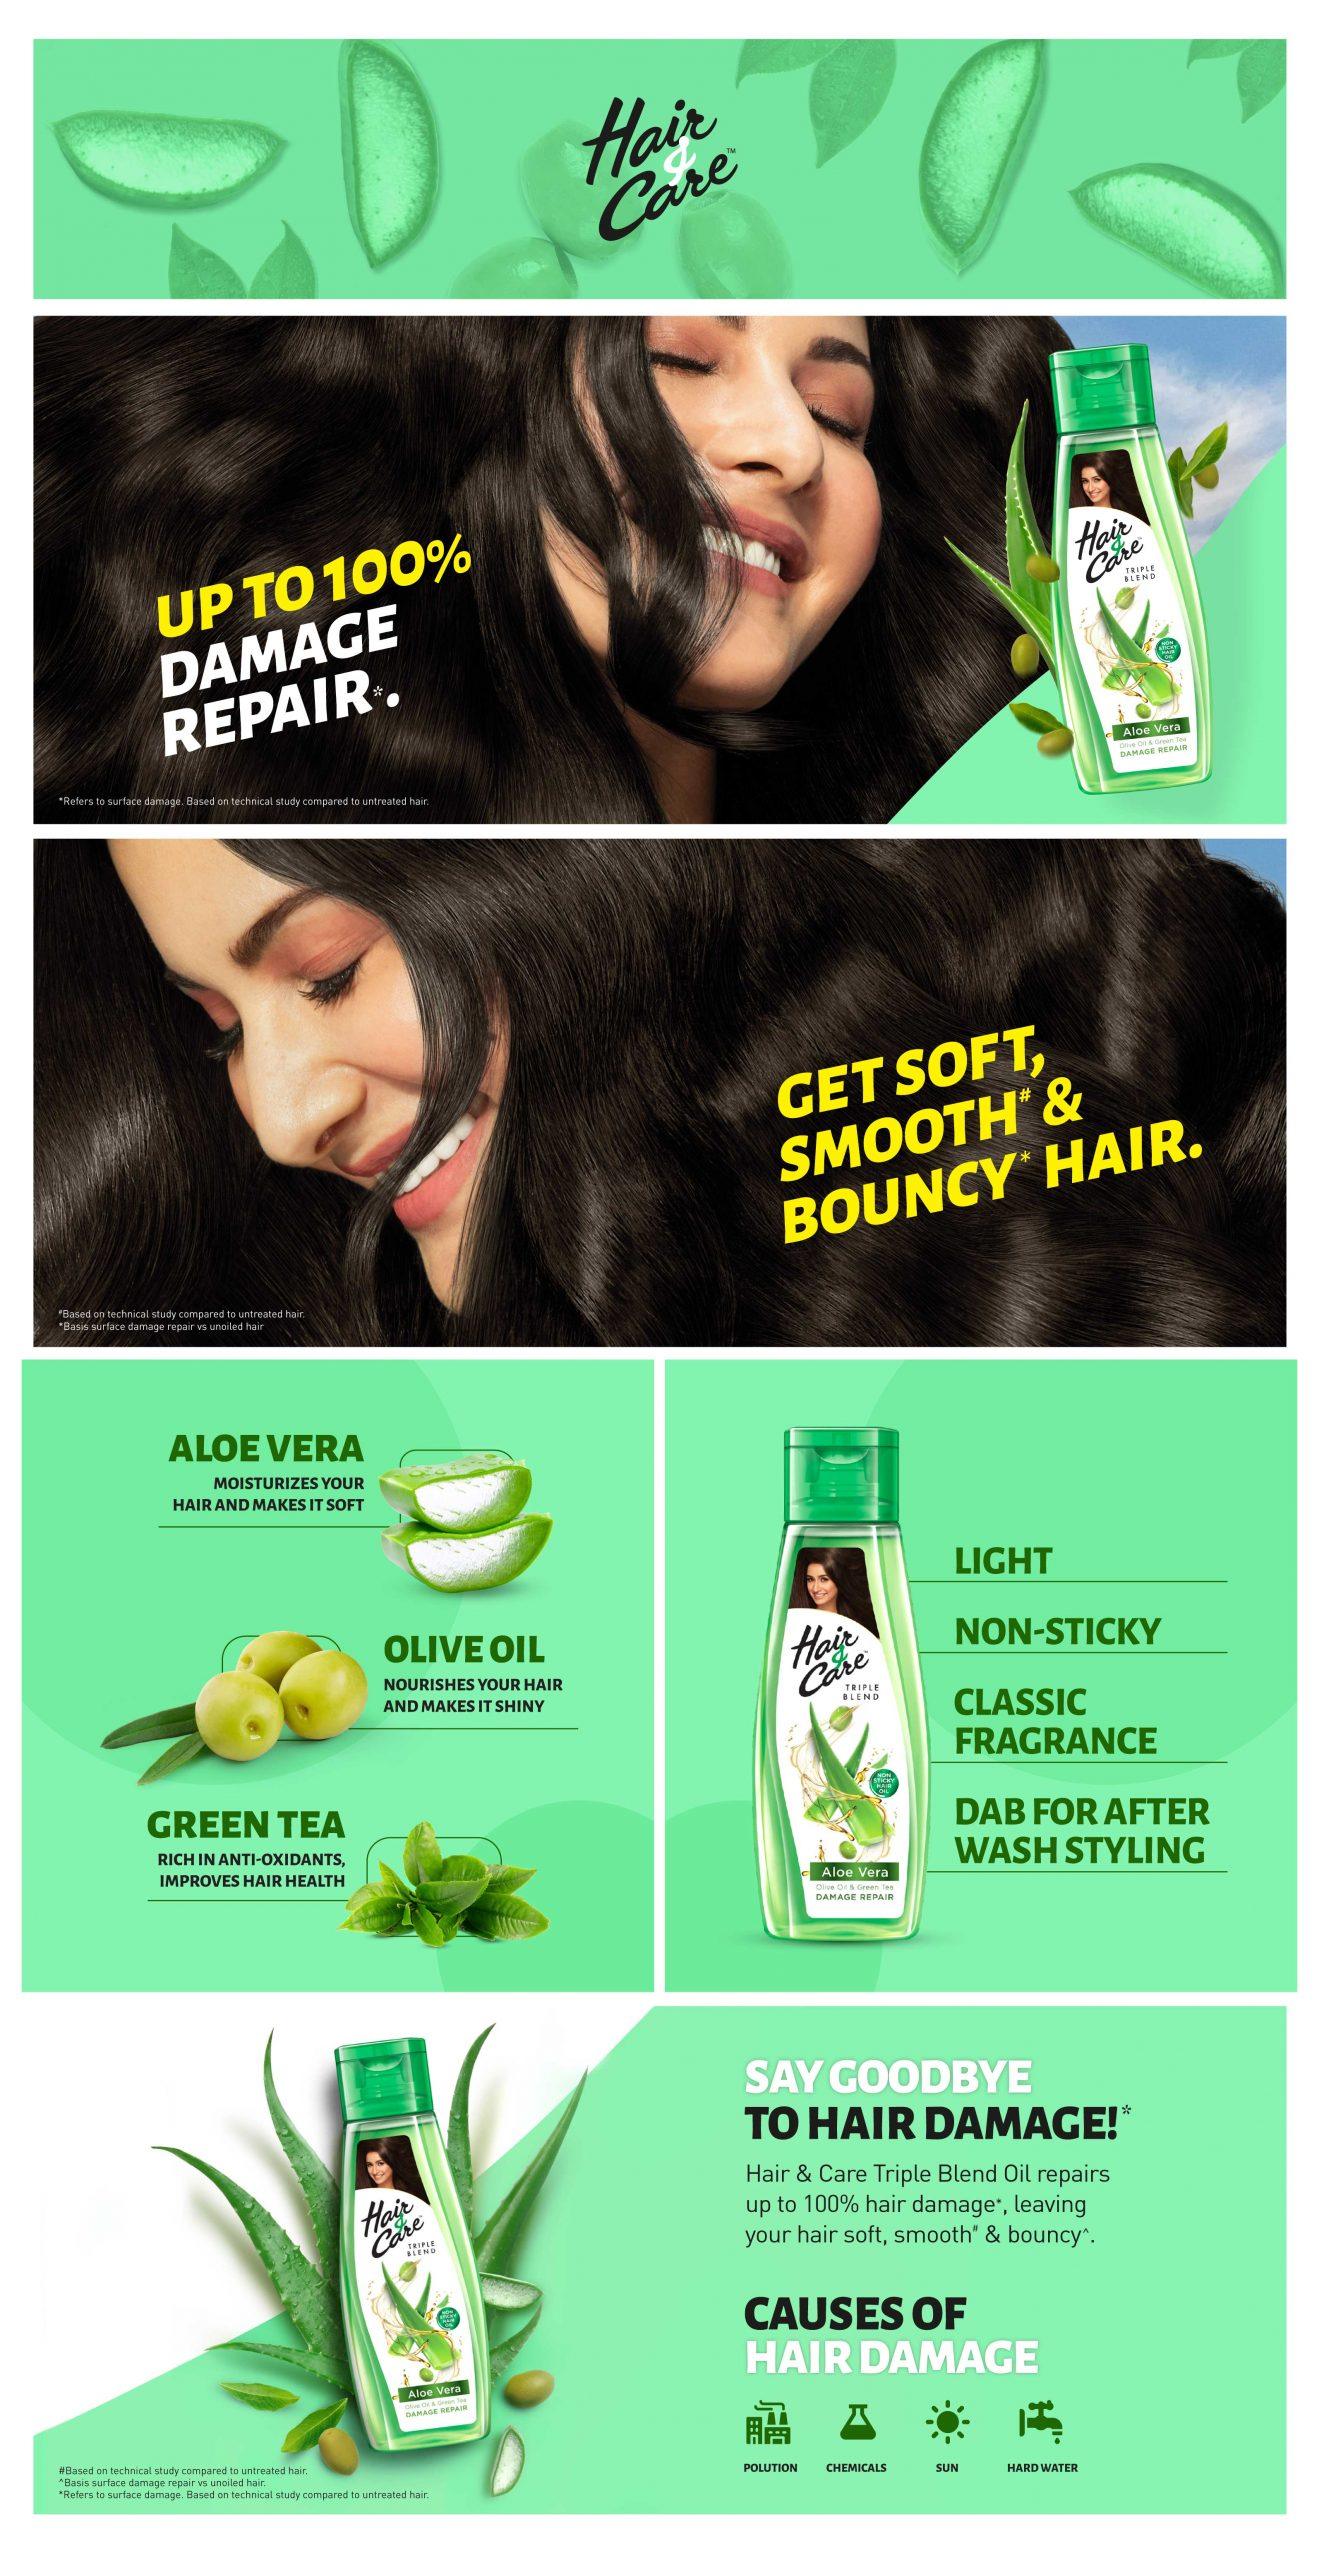 Hair-and-Care-Brand-Store-(Aloe-Vera-_-Olives)